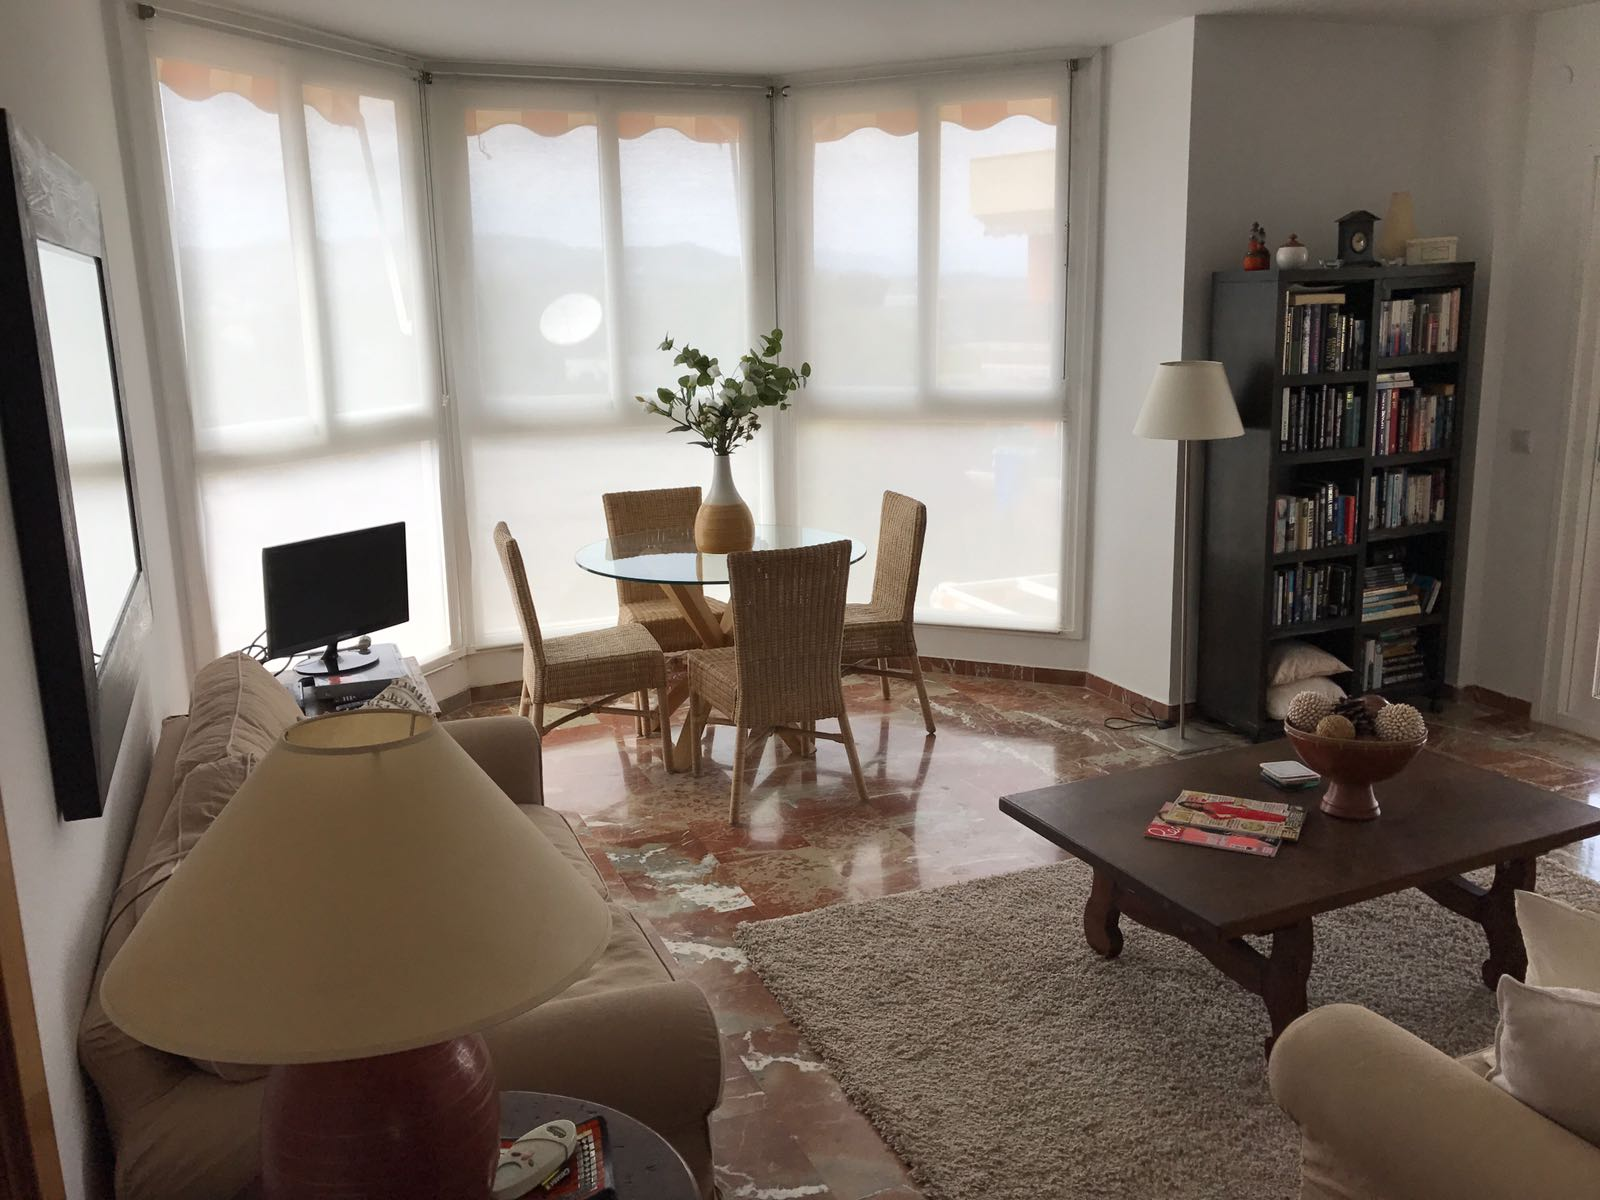 3V-154-C FANTASTIC 3 BEDROOM APARTMENT WITH A GREAT TERRACE!!